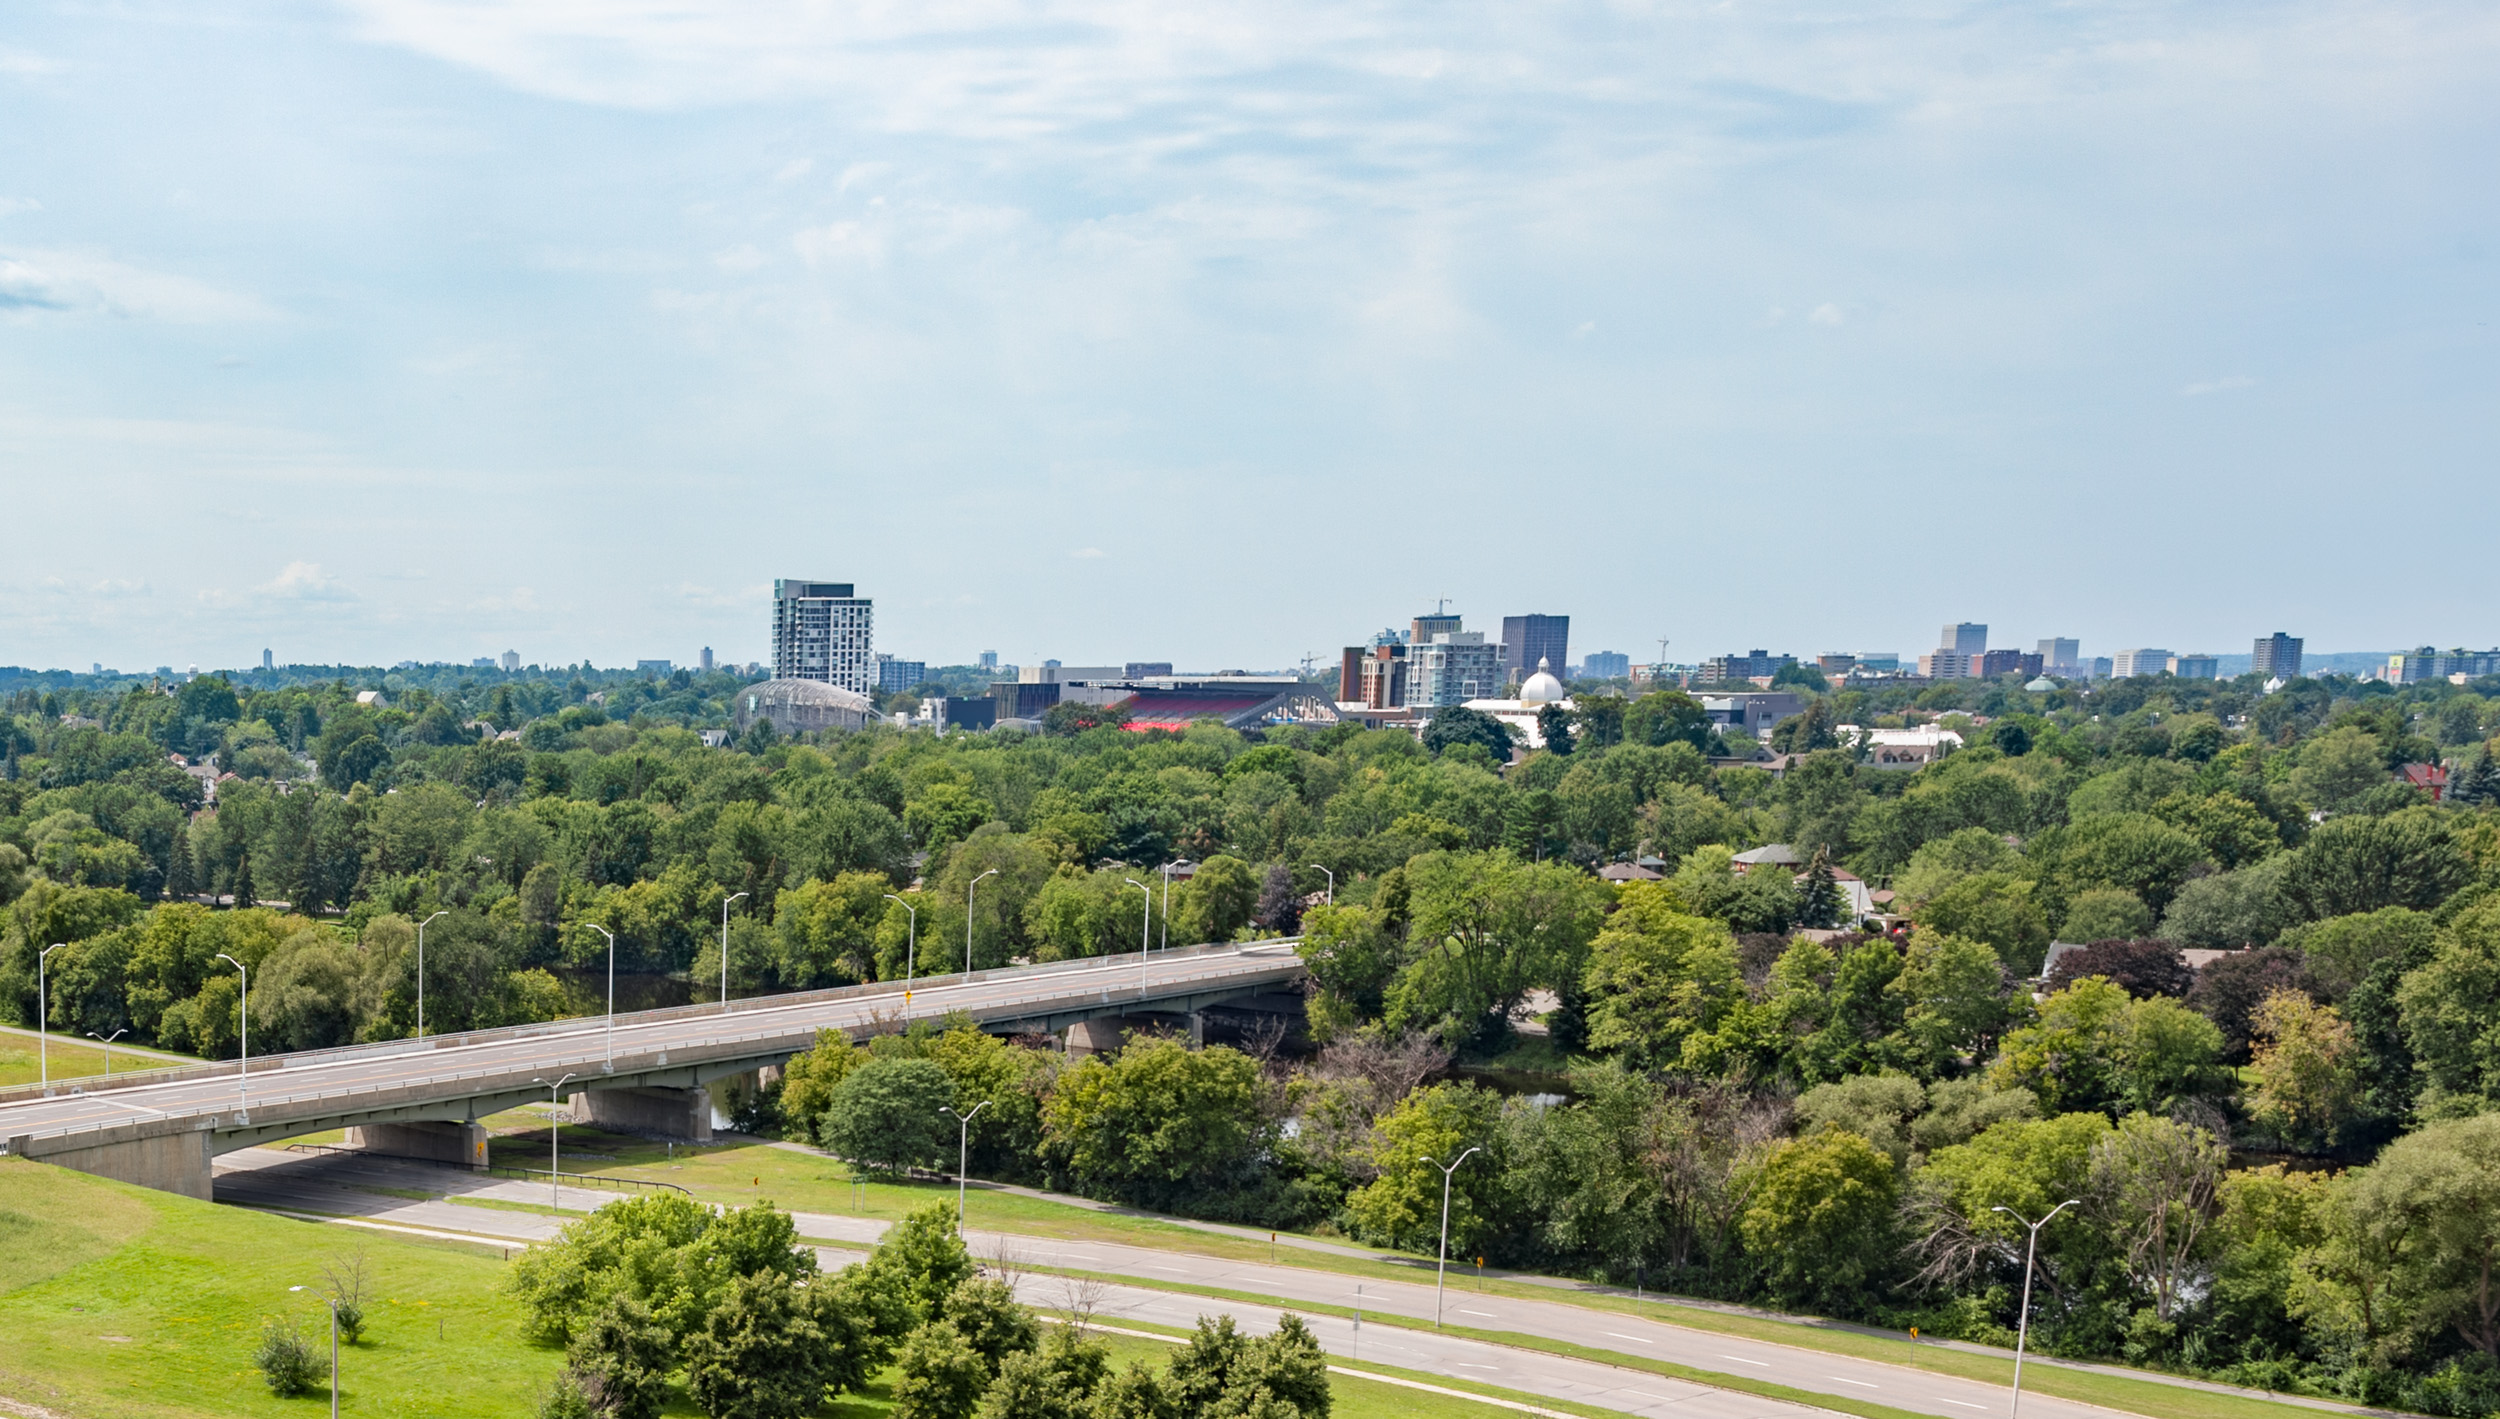 1 bedroom apartments for rent Ottawa at Faircrest ...